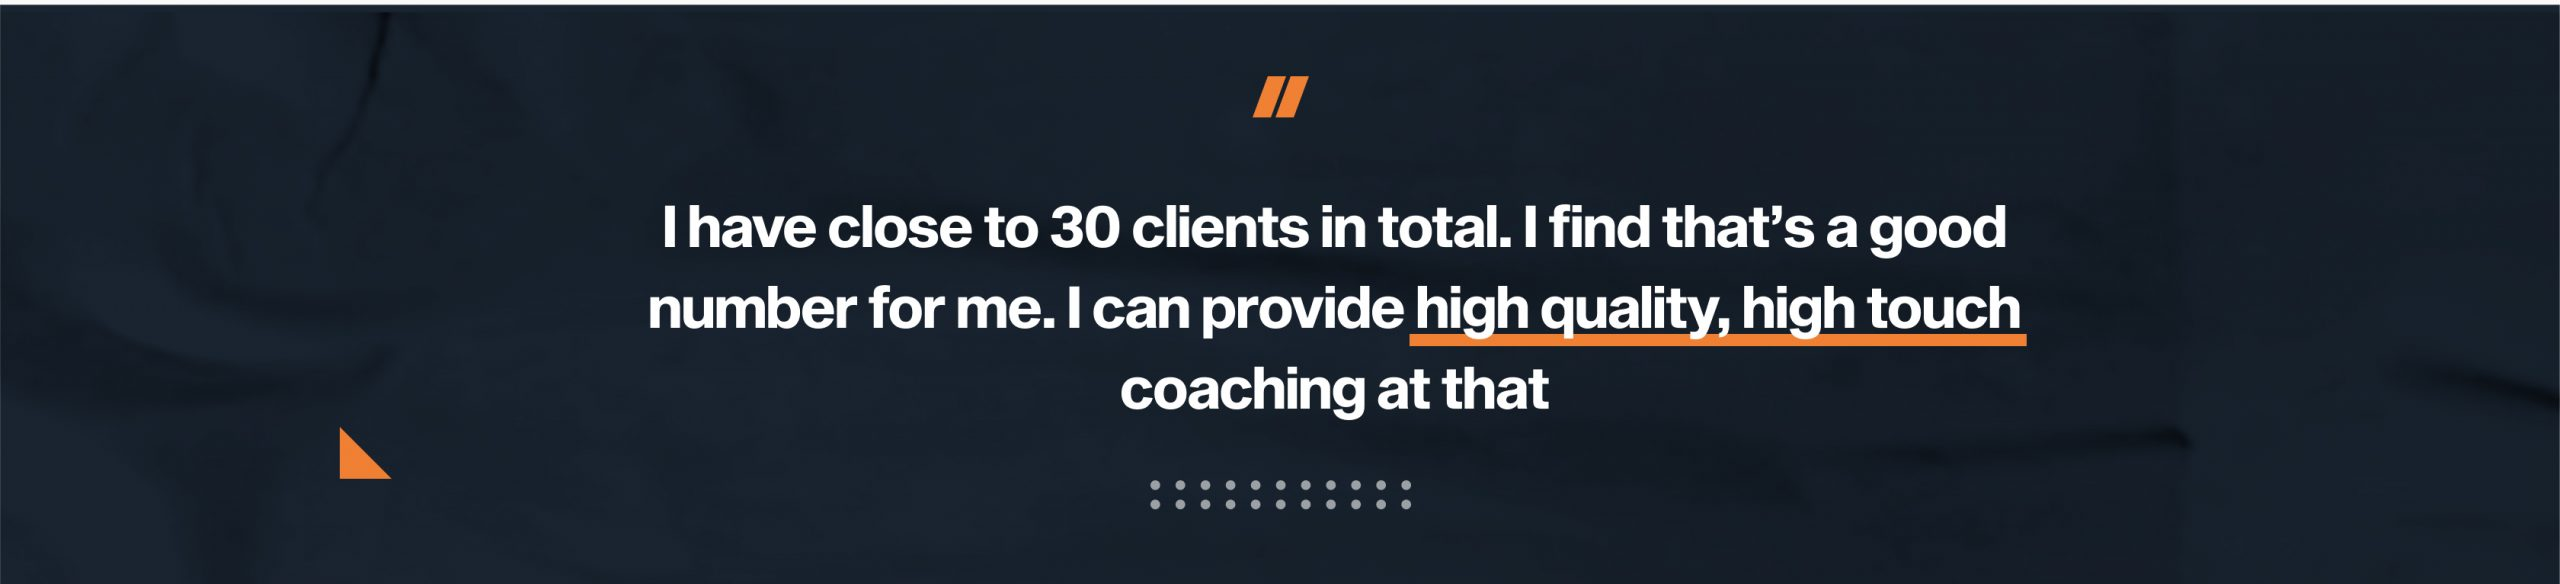 Patryk was talking about the clients he is coaching online now at his fitness business